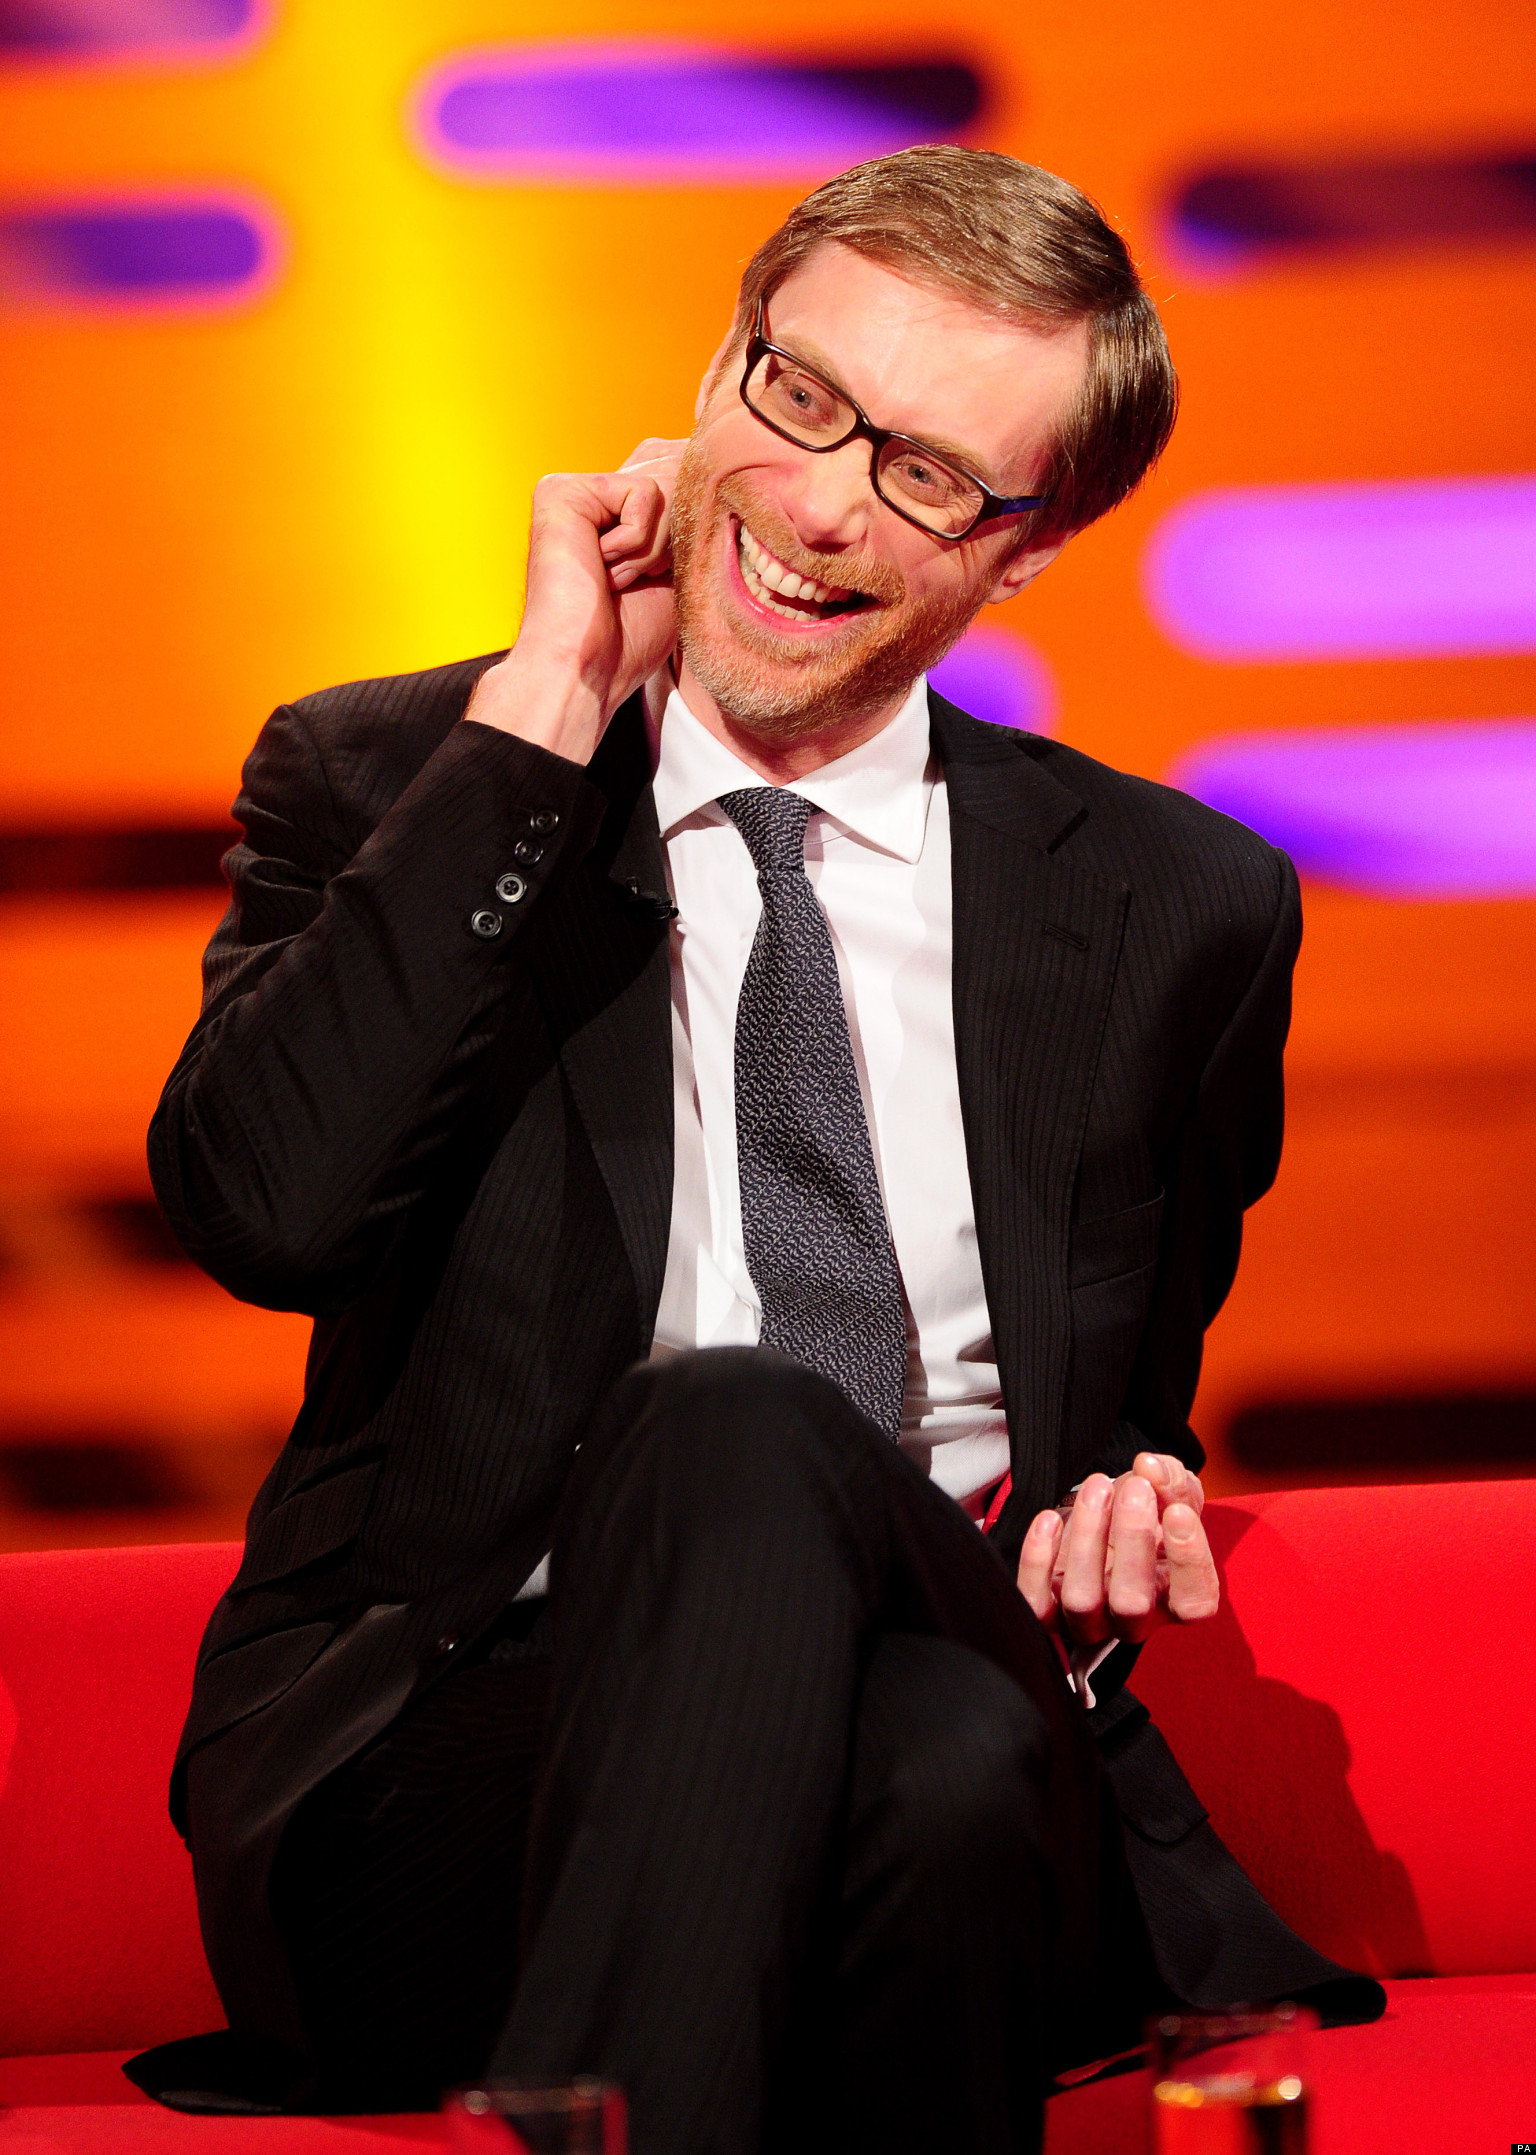 Ricky Gervais' Comedy Partner Stephen Merchant Sorry For ...